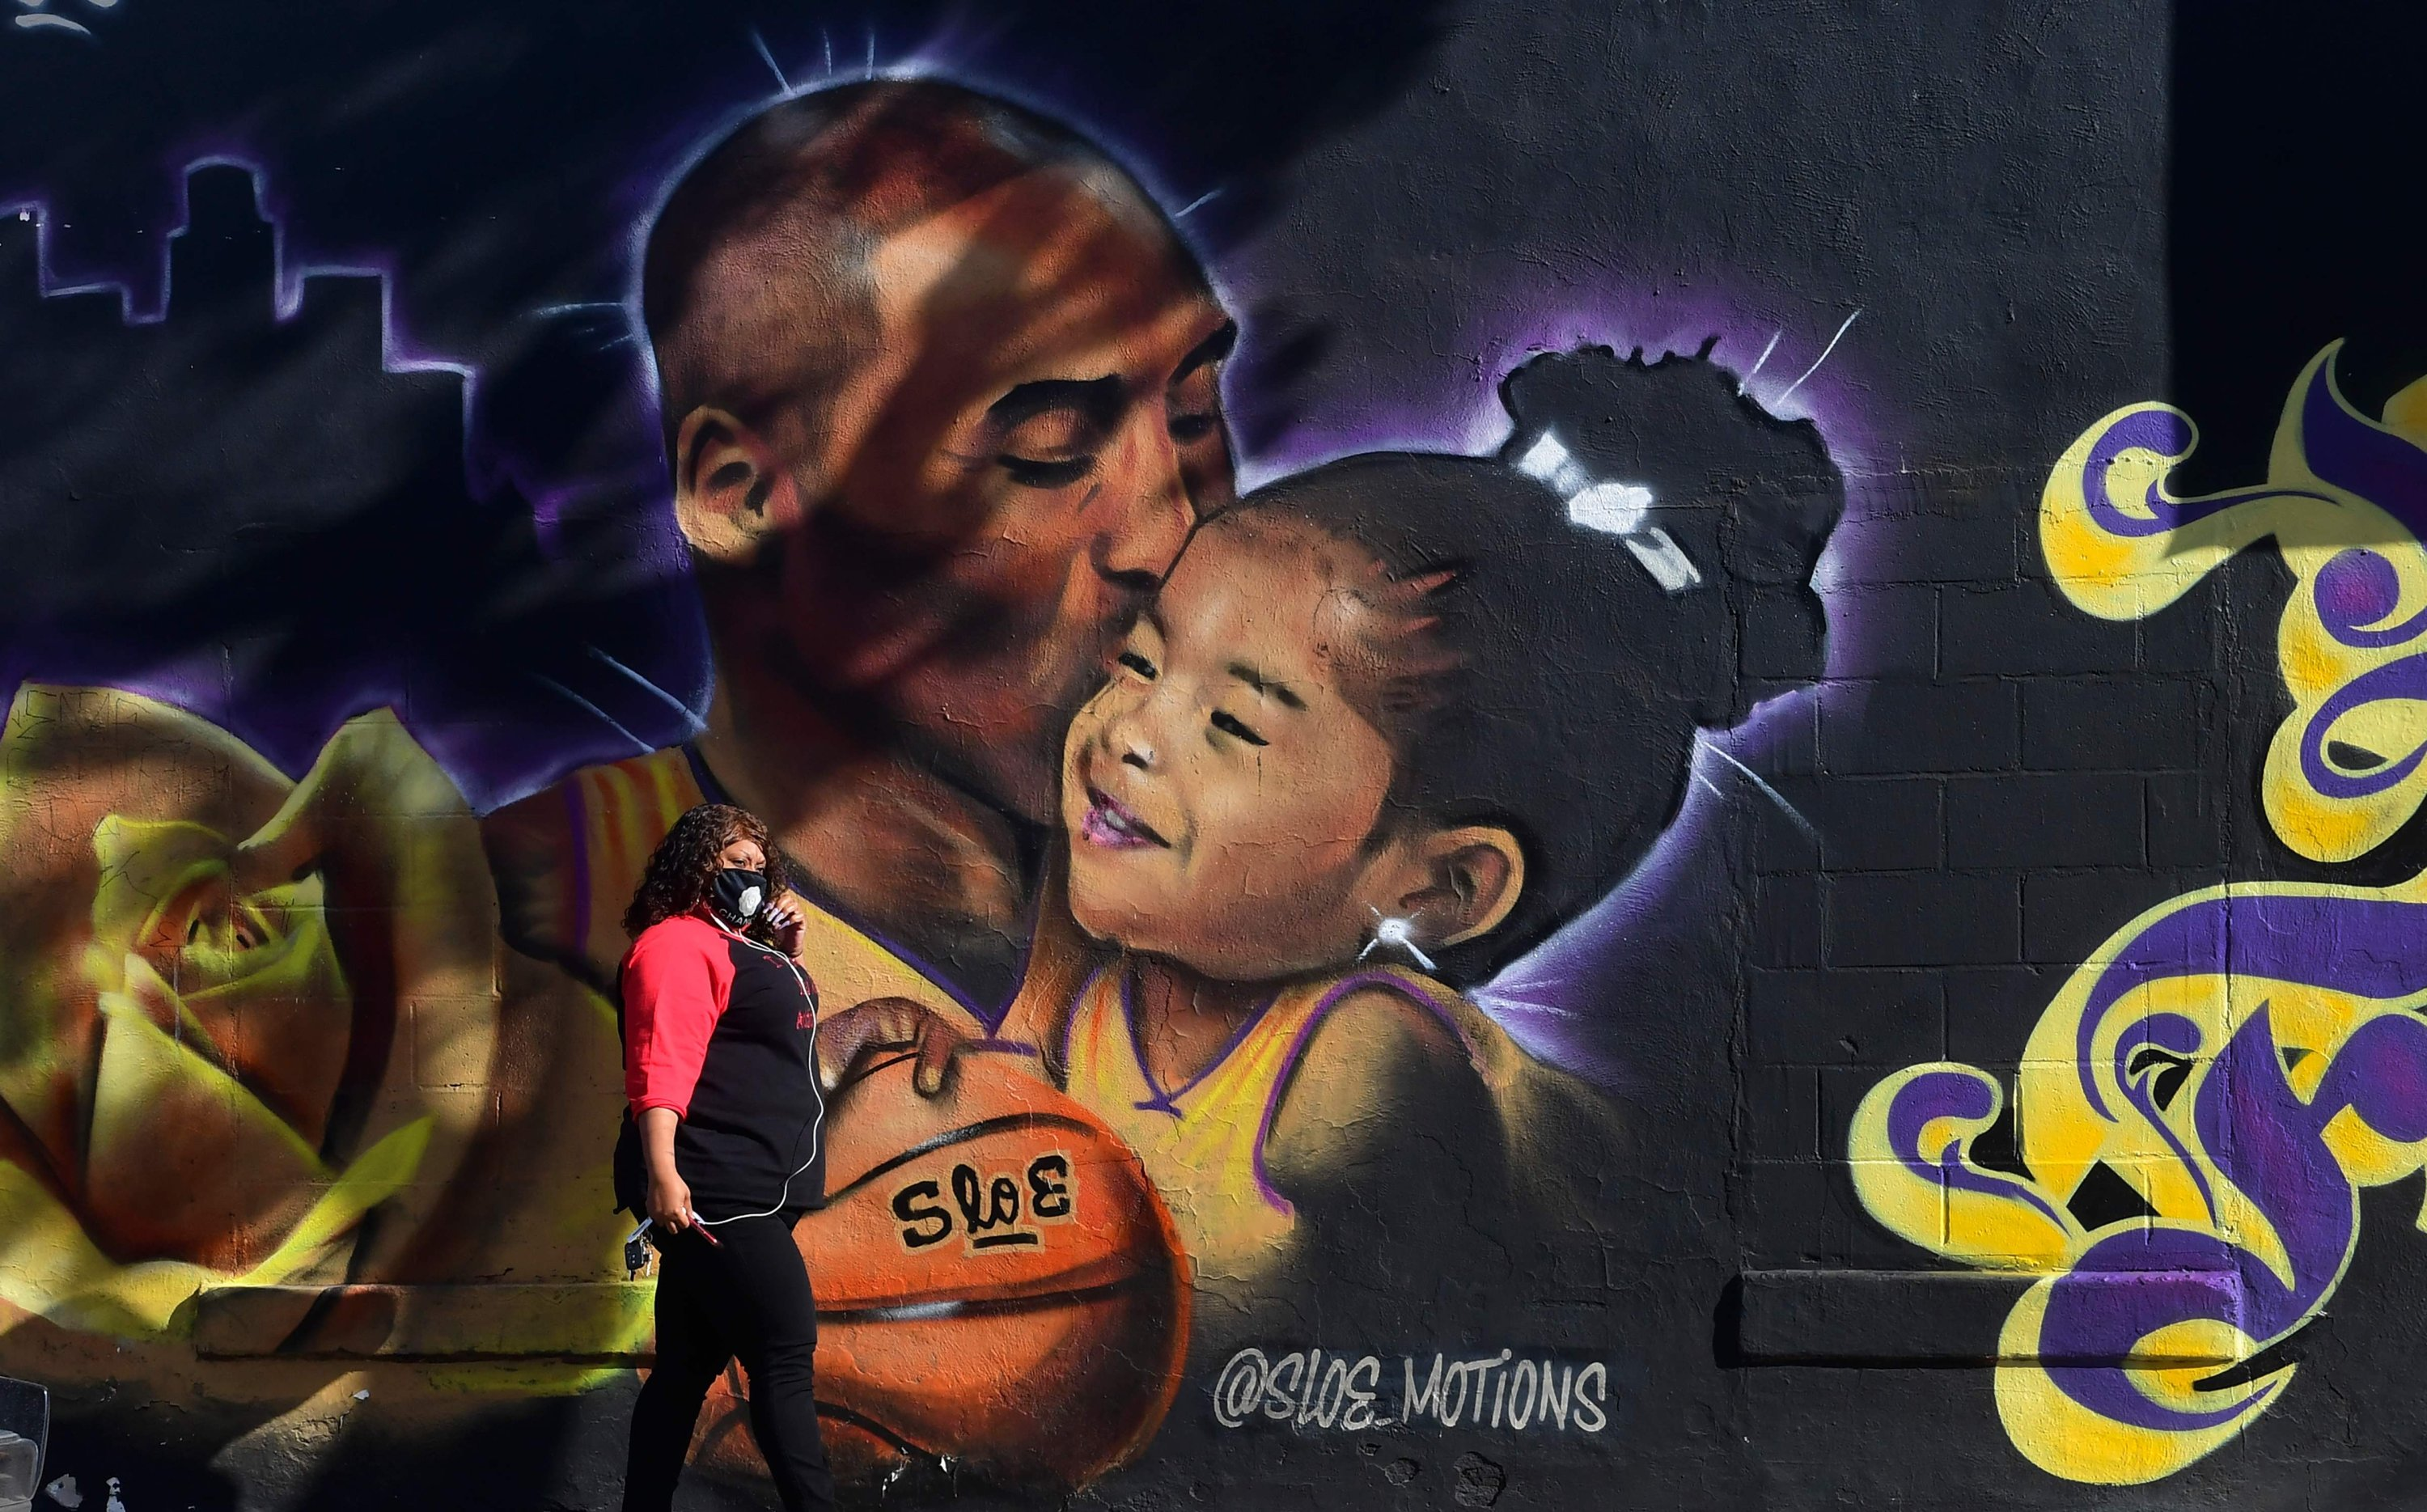 A pedestrian adjusts her facemask walking past a mural of the late Los Angeles Lakers basketball star Kobe Bryant and his daughter Gianna by artist @Sloe_Motions, Los Angeles, California, Jan. 25, 2021. (AFP Photo)